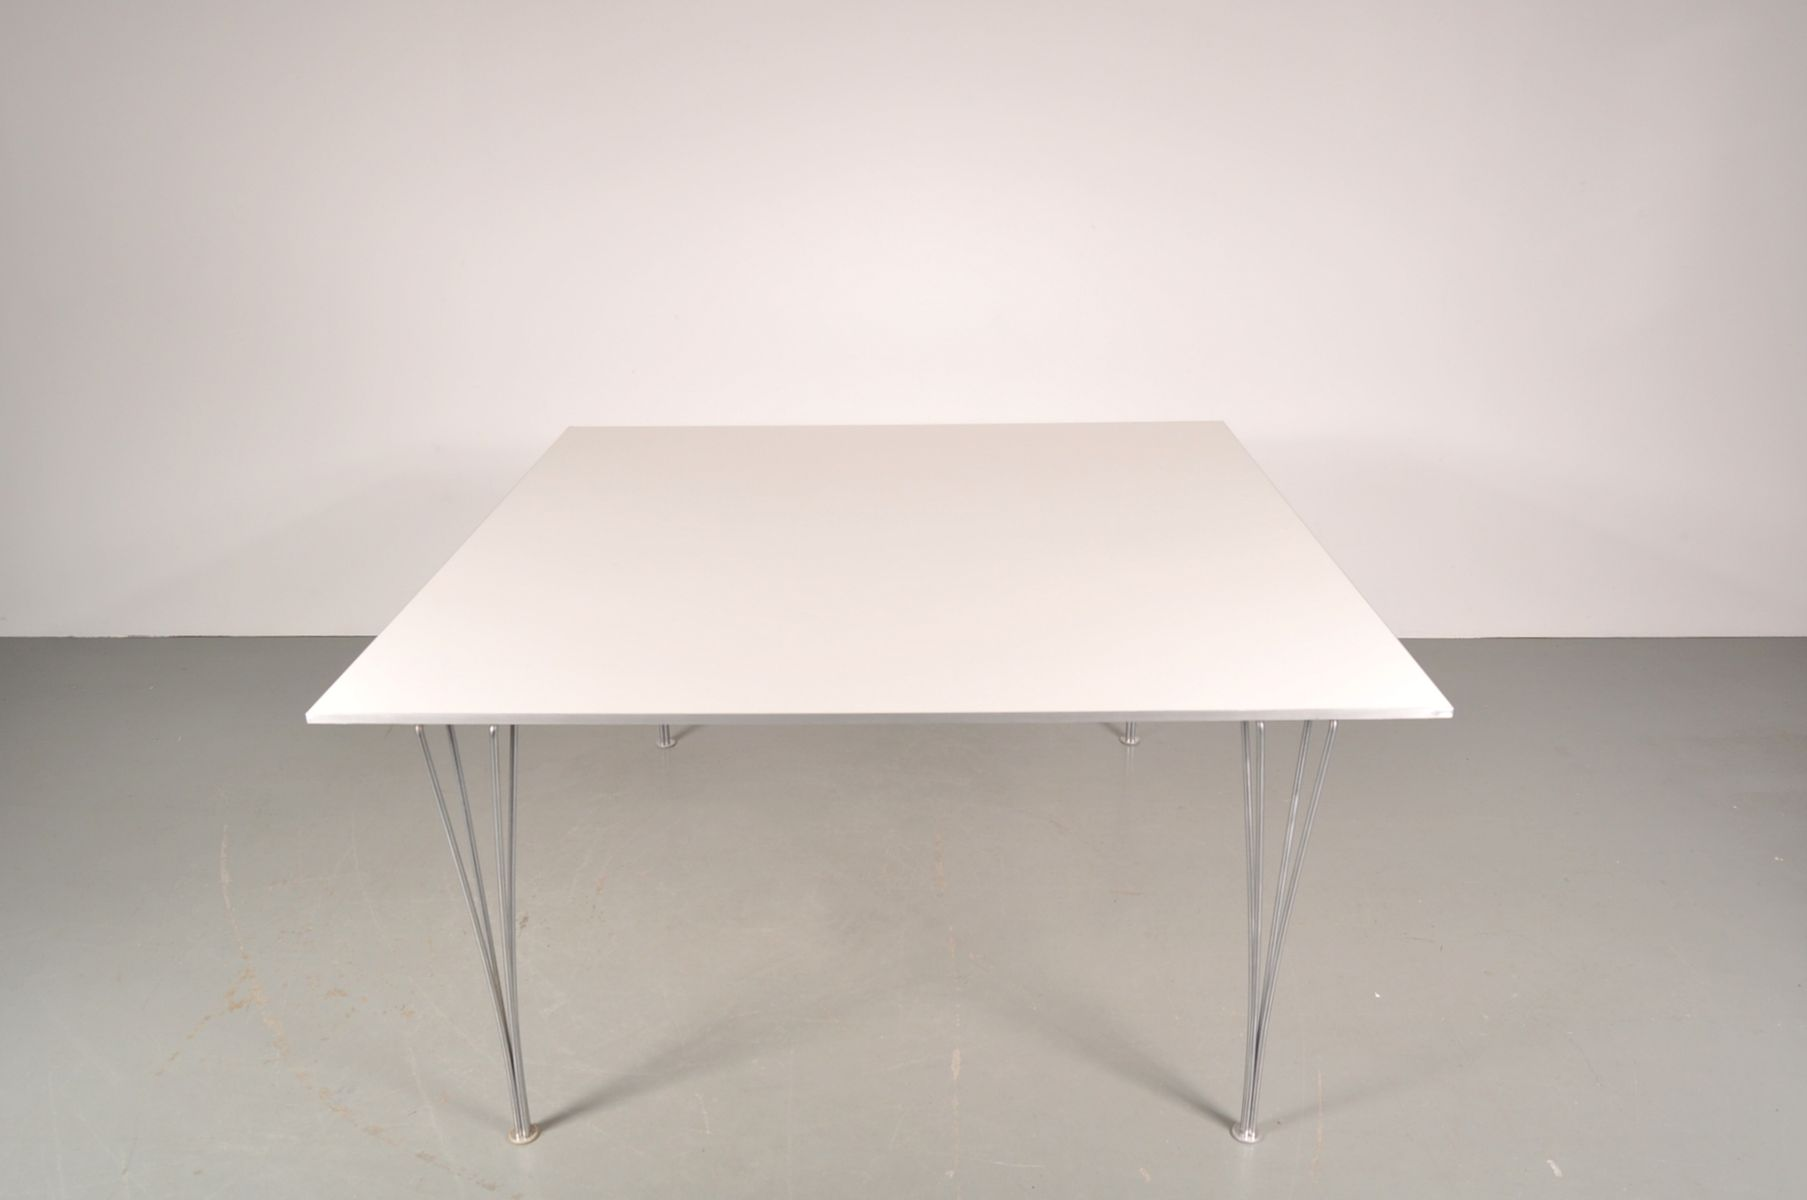 Tres grande table de salle a manger maison design for Table de salle a manger grande largeur